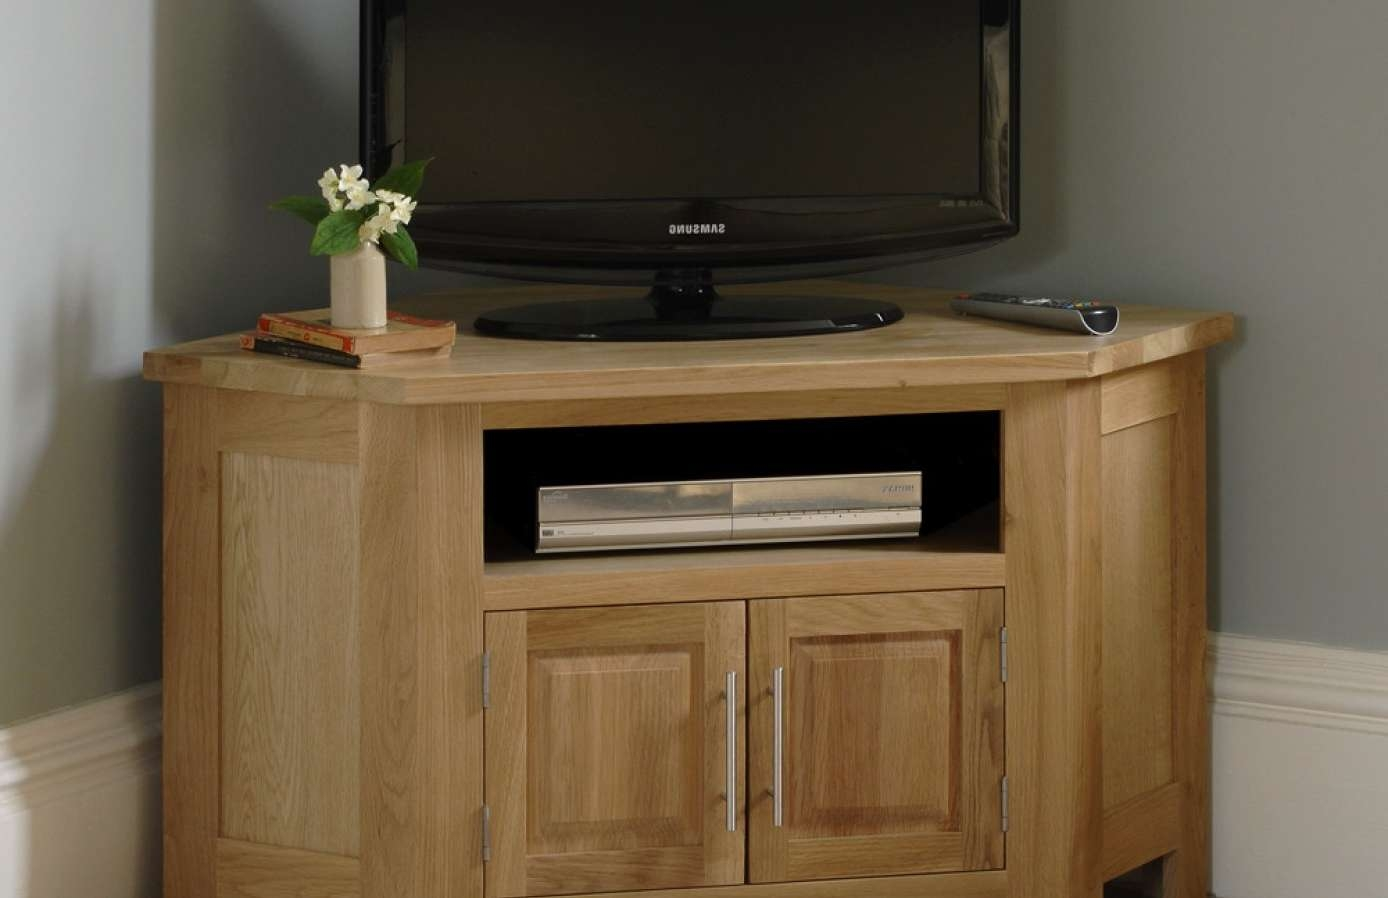 Tv : Wonderful Wooden Corner Tv Cabinets Uk Delicate Dark Oak Throughout Wooden Corner Tv Cabinets (View 17 of 20)